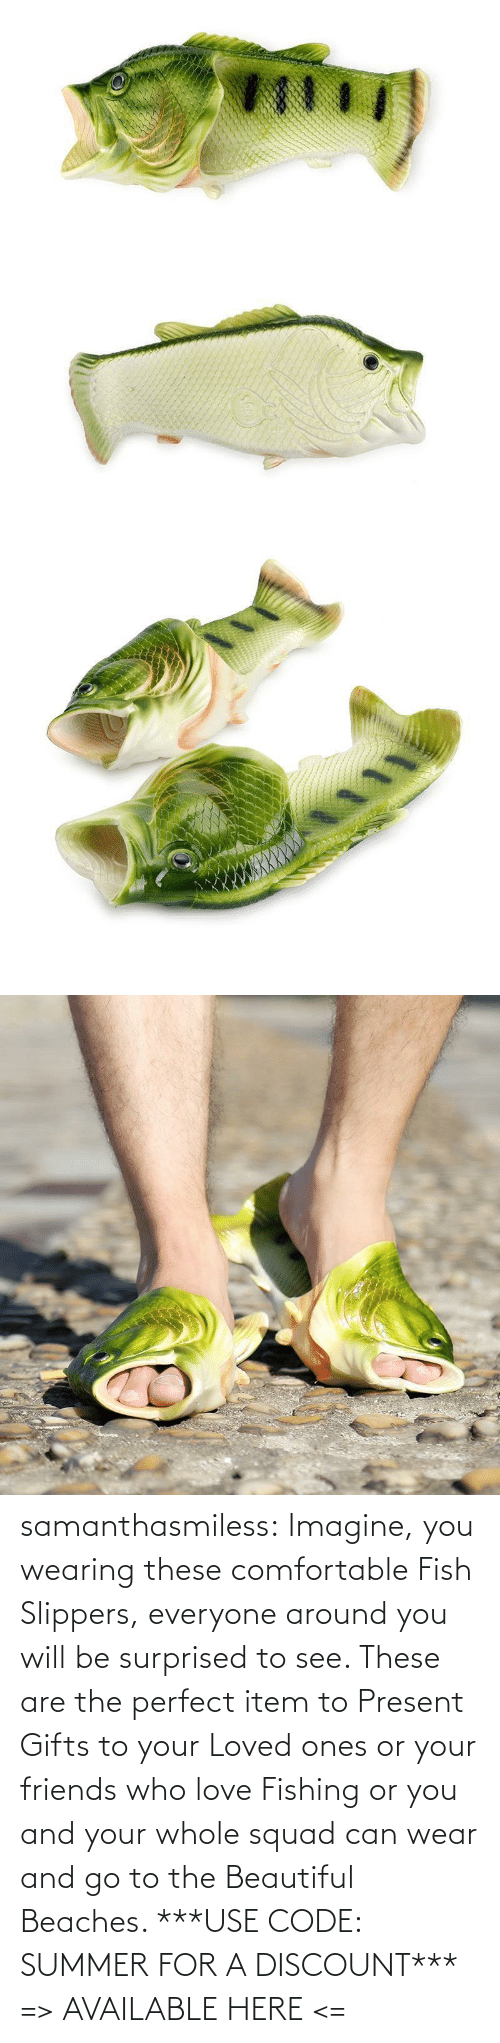 see: samanthasmiless: Imagine, you wearing these comfortable Fish Slippers, everyone around you will be surprised to see. These are the perfect item to Present Gifts to your Loved ones or your friends who love Fishing or you and your whole squad can wear and go to the Beautiful Beaches.  ***USE CODE: SUMMER FOR A DISCOUNT*** => AVAILABLE HERE <=